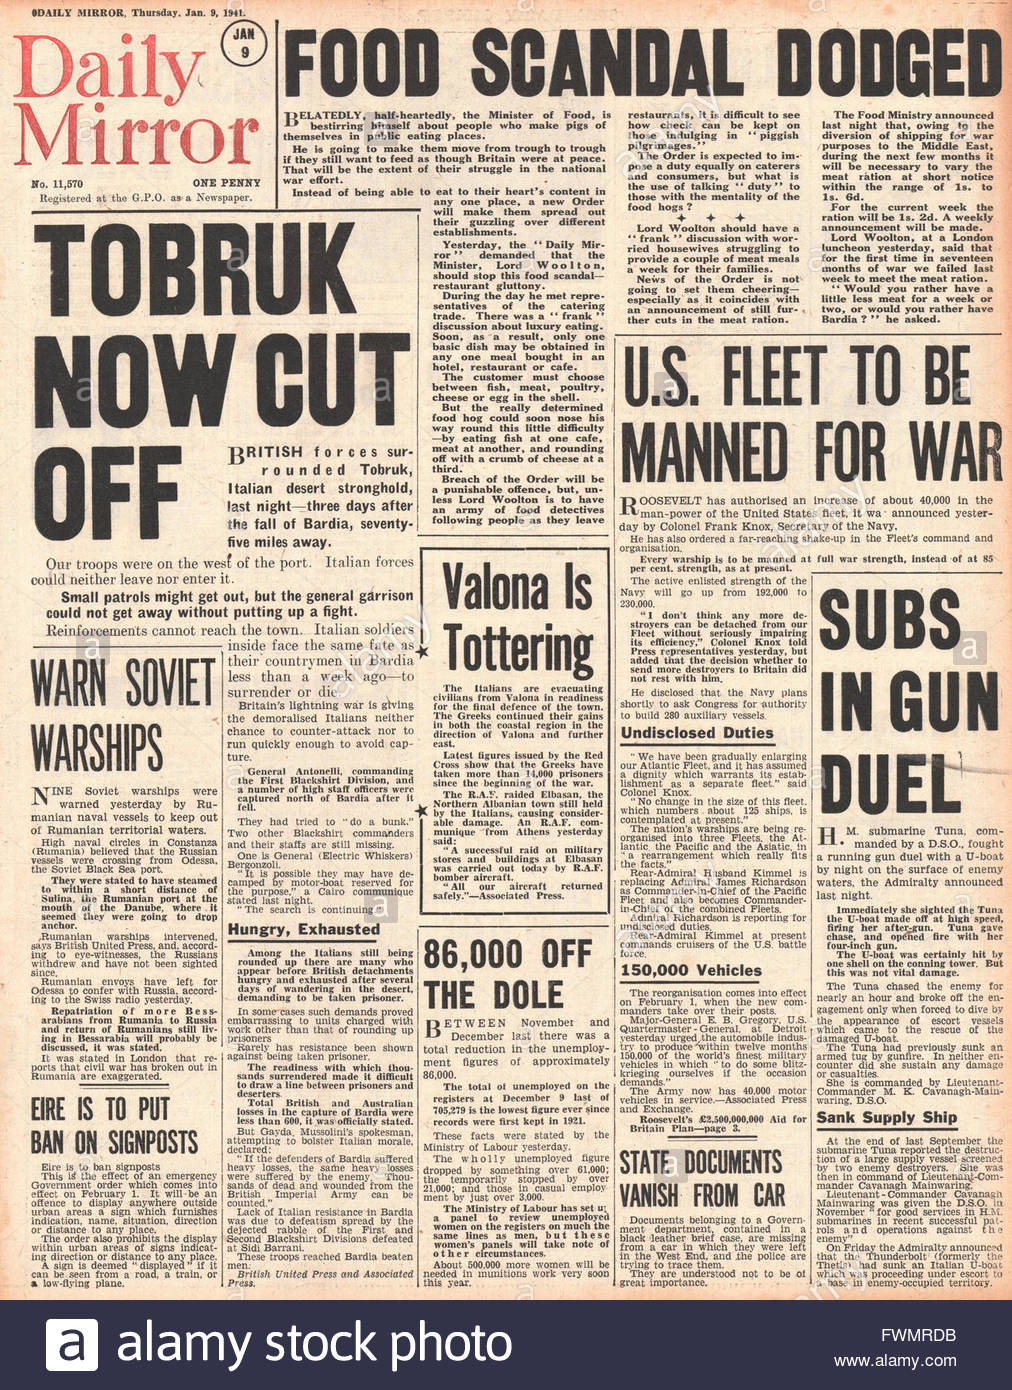 1941 front page  Daily Mirror Tobruk cut off and food scandal article - Stock Image